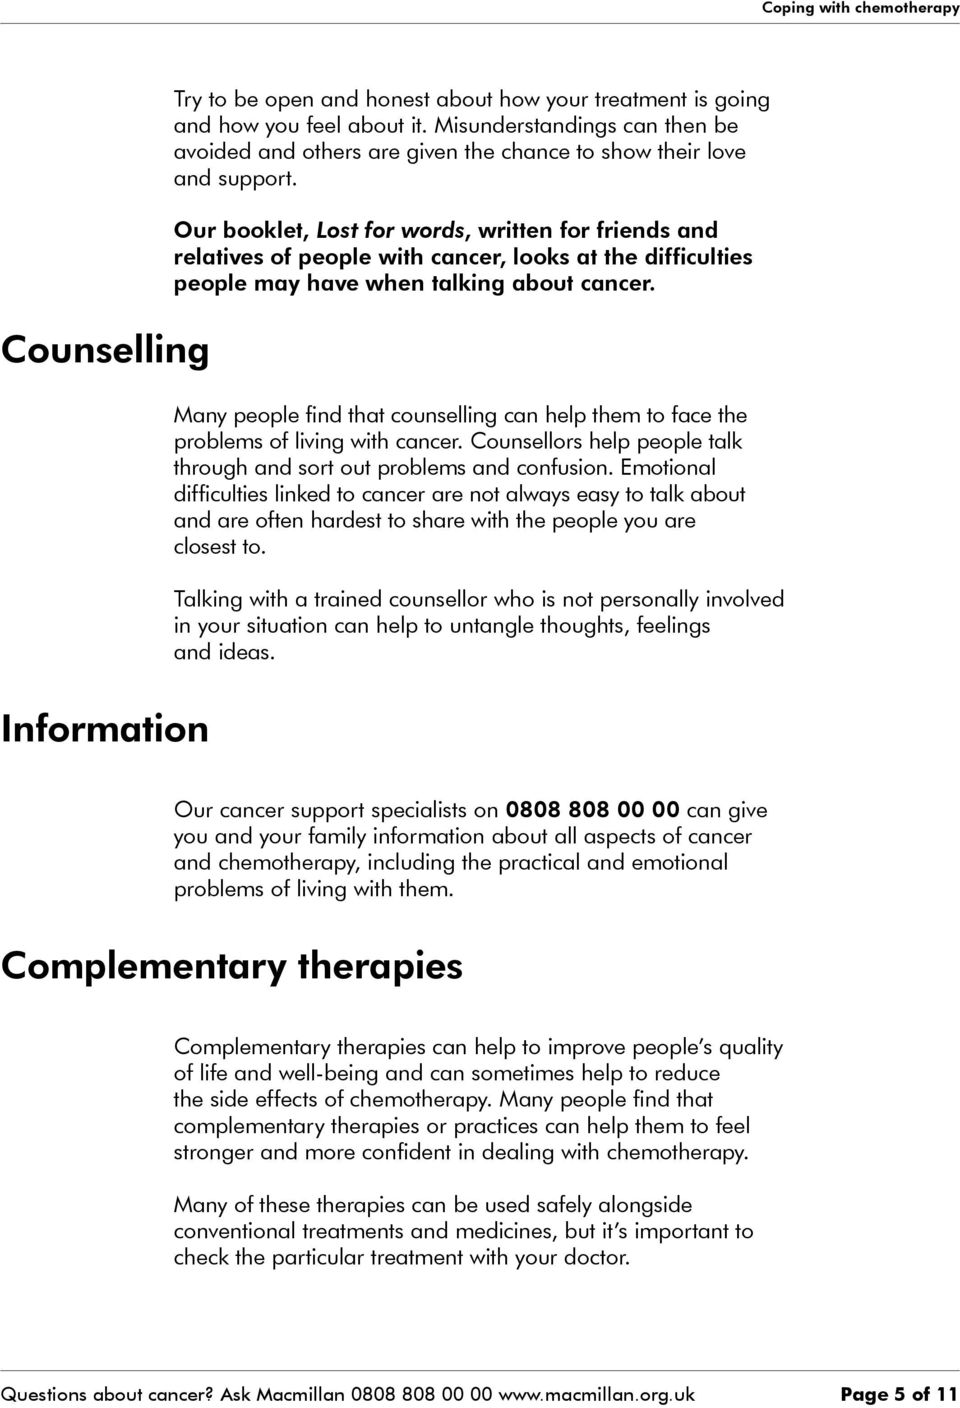 Many people find that counselling can help them to face the problems of living with cancer. Counsellors help people talk through and sort out problems and confusion.